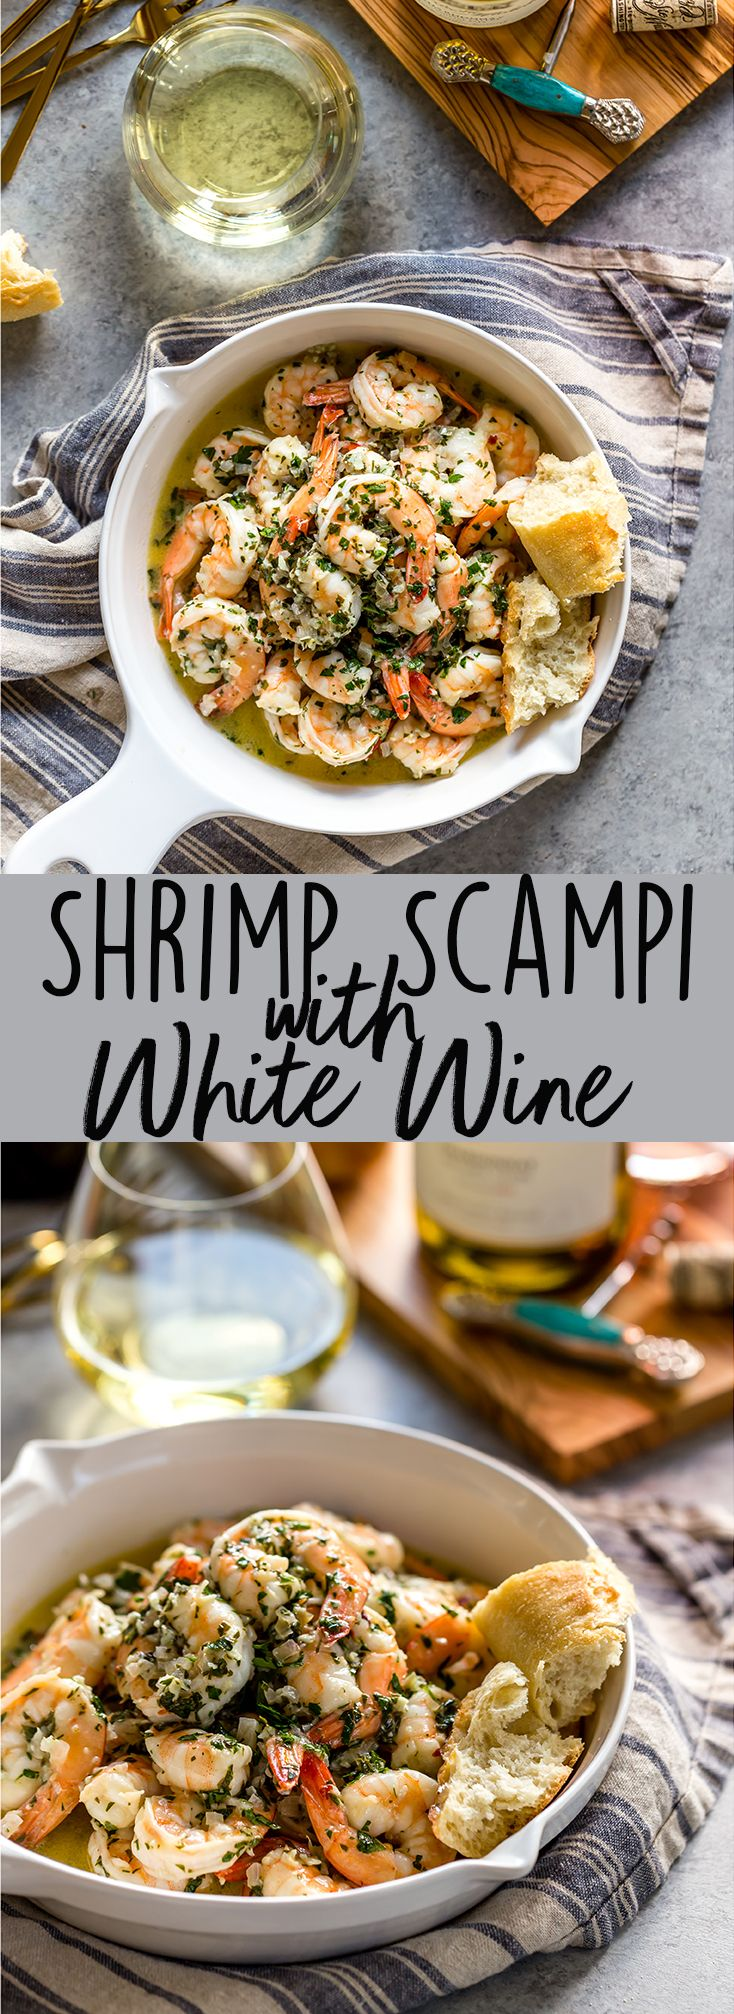 This Shrimp Scampi with White Wine has a garlicky, buttery sauce, balanced by the bright freshness of wine, lemon juice and parsley. It's fantastic mixed with pasta, over rice, or just with crusty bread for dipping in the sauce.   Easy shrimp scampi recipe   Best shrimp scampi @QFCGrocery #WAWineMonth #sponsored